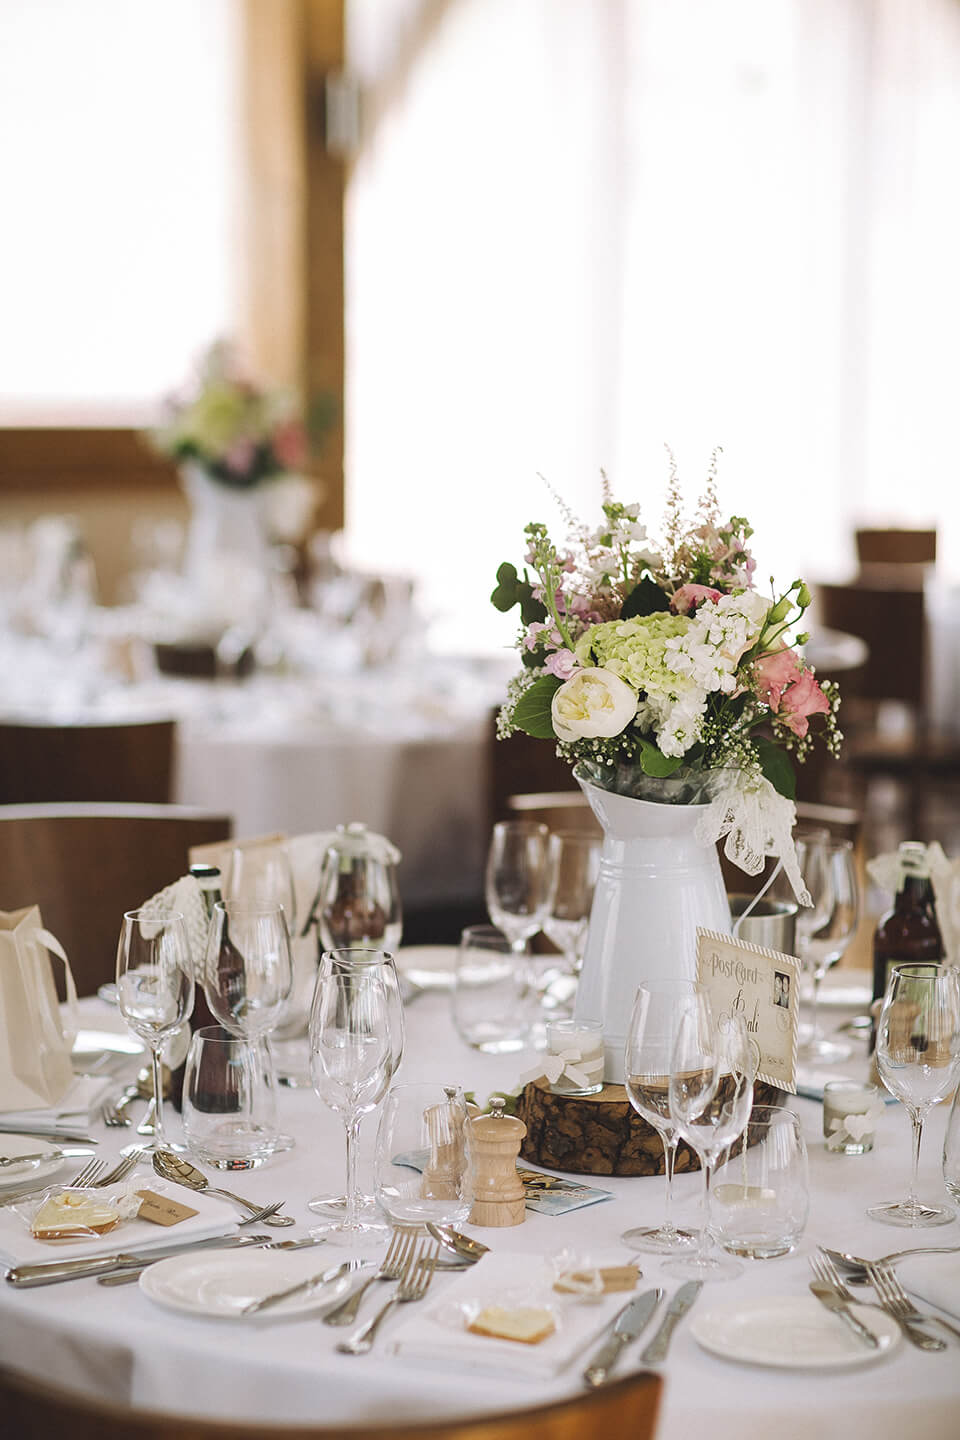 Floral table centrepieces created a rustic wedding look